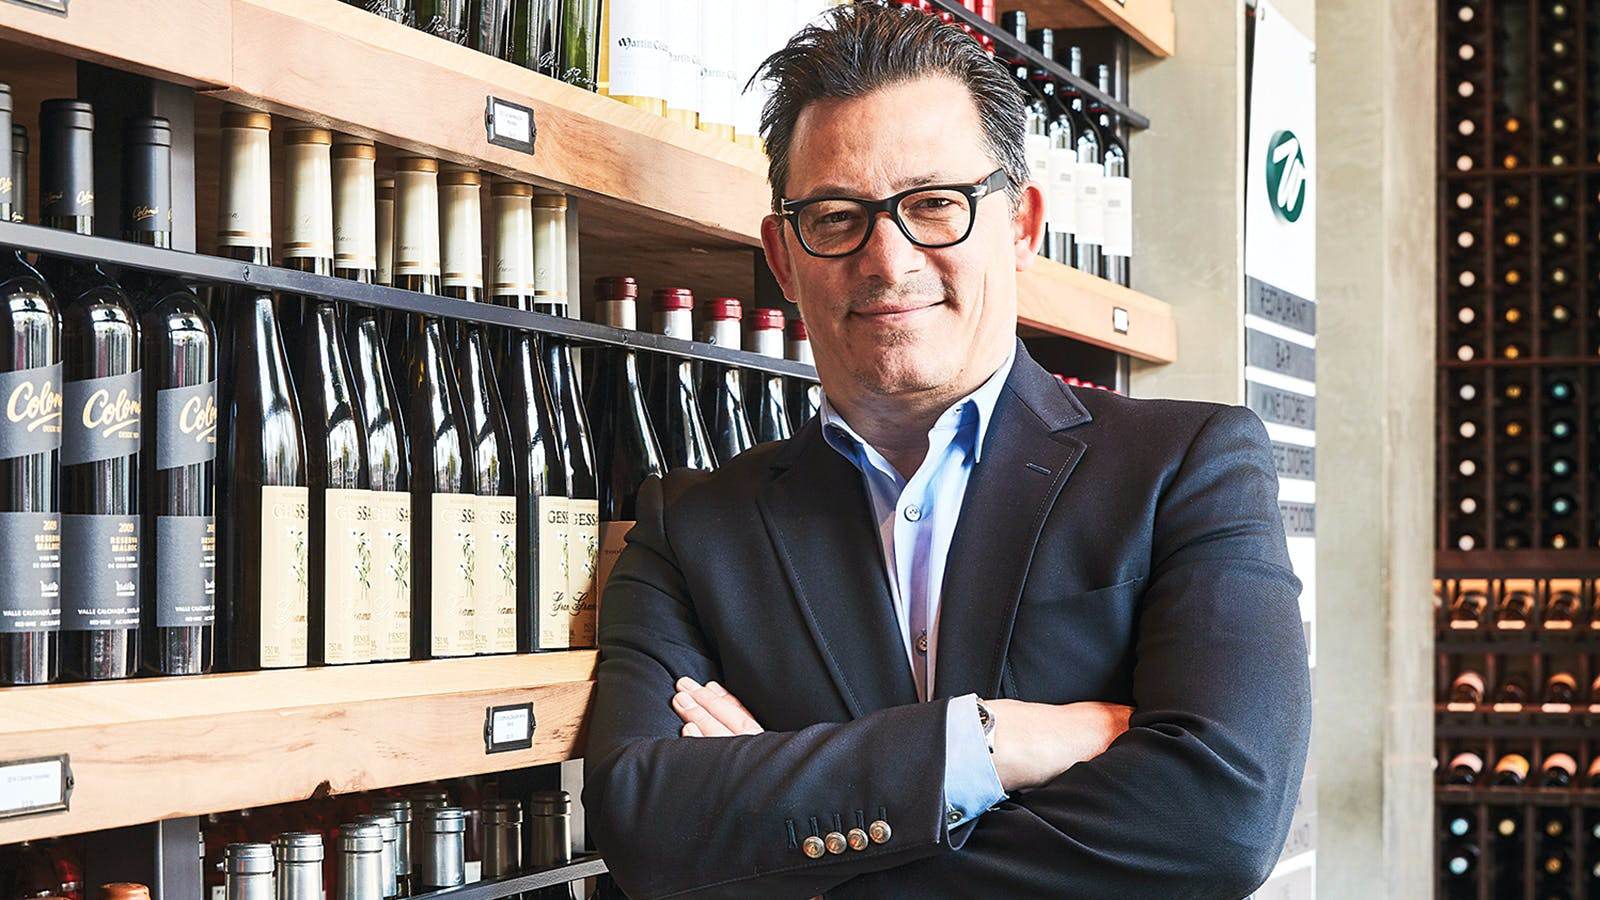 Christie's and Wally's Partner on New York Wine Auctions